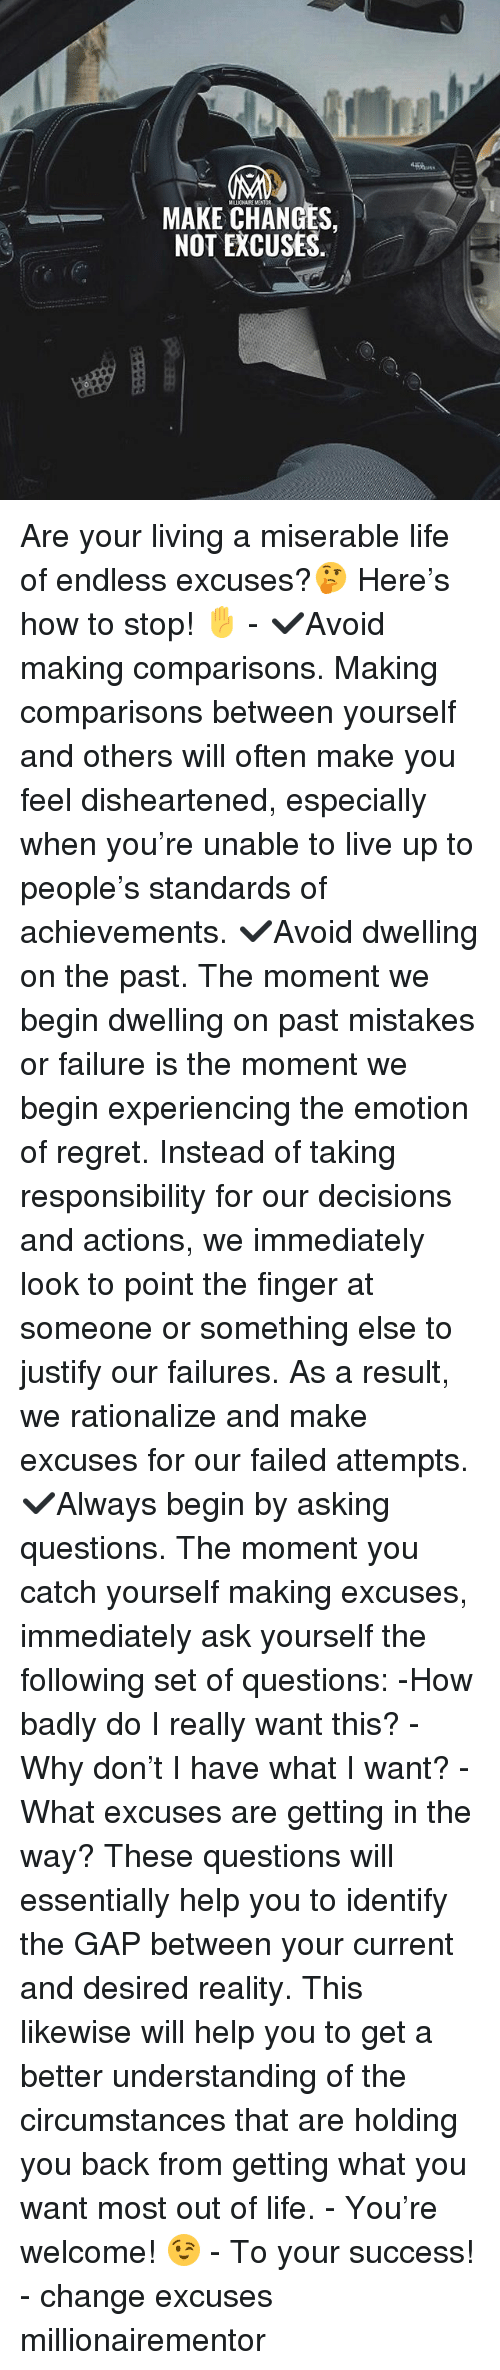 Life, Memes, and Regret: MAKE CHANGES,  NOT EXCUSES. Are your living a miserable life of endless excuses?🤔 Here's how to stop! ✋ - ✔️Avoid making comparisons. Making comparisons between yourself and others will often make you feel disheartened, especially when you're unable to live up to people's standards of achievements. ✔️Avoid dwelling on the past. The moment we begin dwelling on past mistakes or failure is the moment we begin experiencing the emotion of regret. Instead of taking responsibility for our decisions and actions, we immediately look to point the finger at someone or something else to justify our failures. As a result, we rationalize and make excuses for our failed attempts. ✔️Always begin by asking questions. The moment you catch yourself making excuses, immediately ask yourself the following set of questions: -How badly do I really want this? -Why don't I have what I want? -What excuses are getting in the way? These questions will essentially help you to identify the GAP between your current and desired reality. This likewise will help you to get a better understanding of the circumstances that are holding you back from getting what you want most out of life. - You're welcome! 😉 - To your success! - change excuses millionairementor